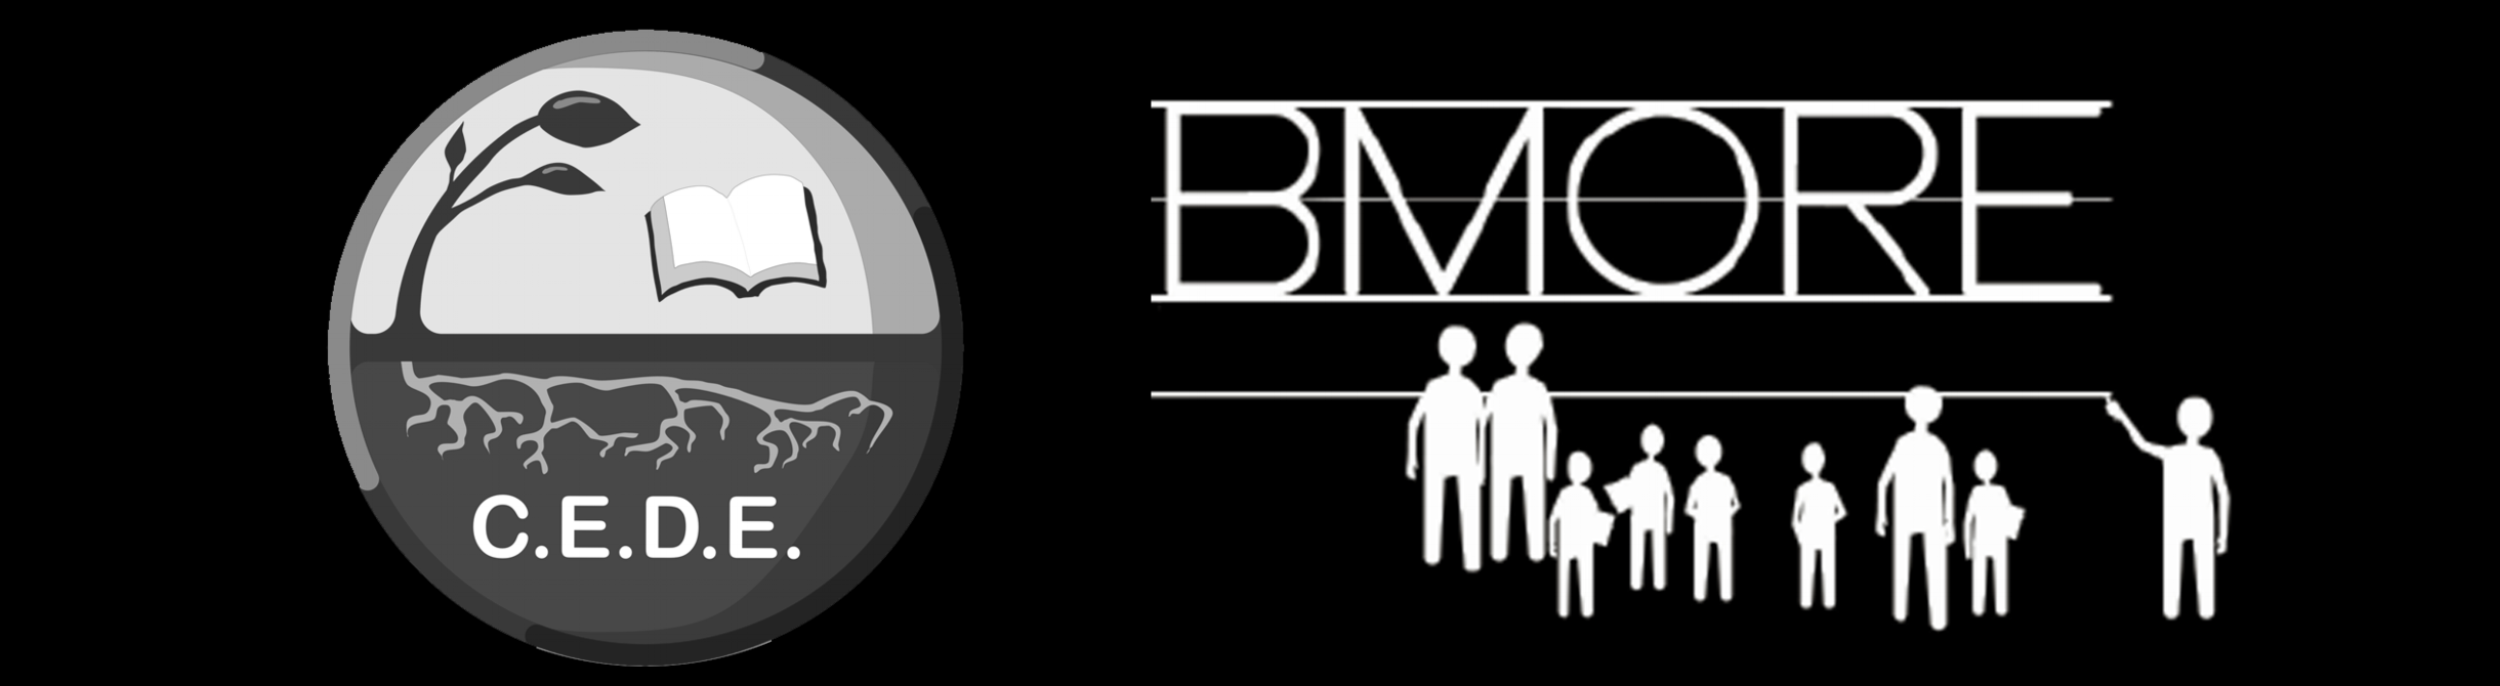 bmorecede.combined logo inverted.b&w.png